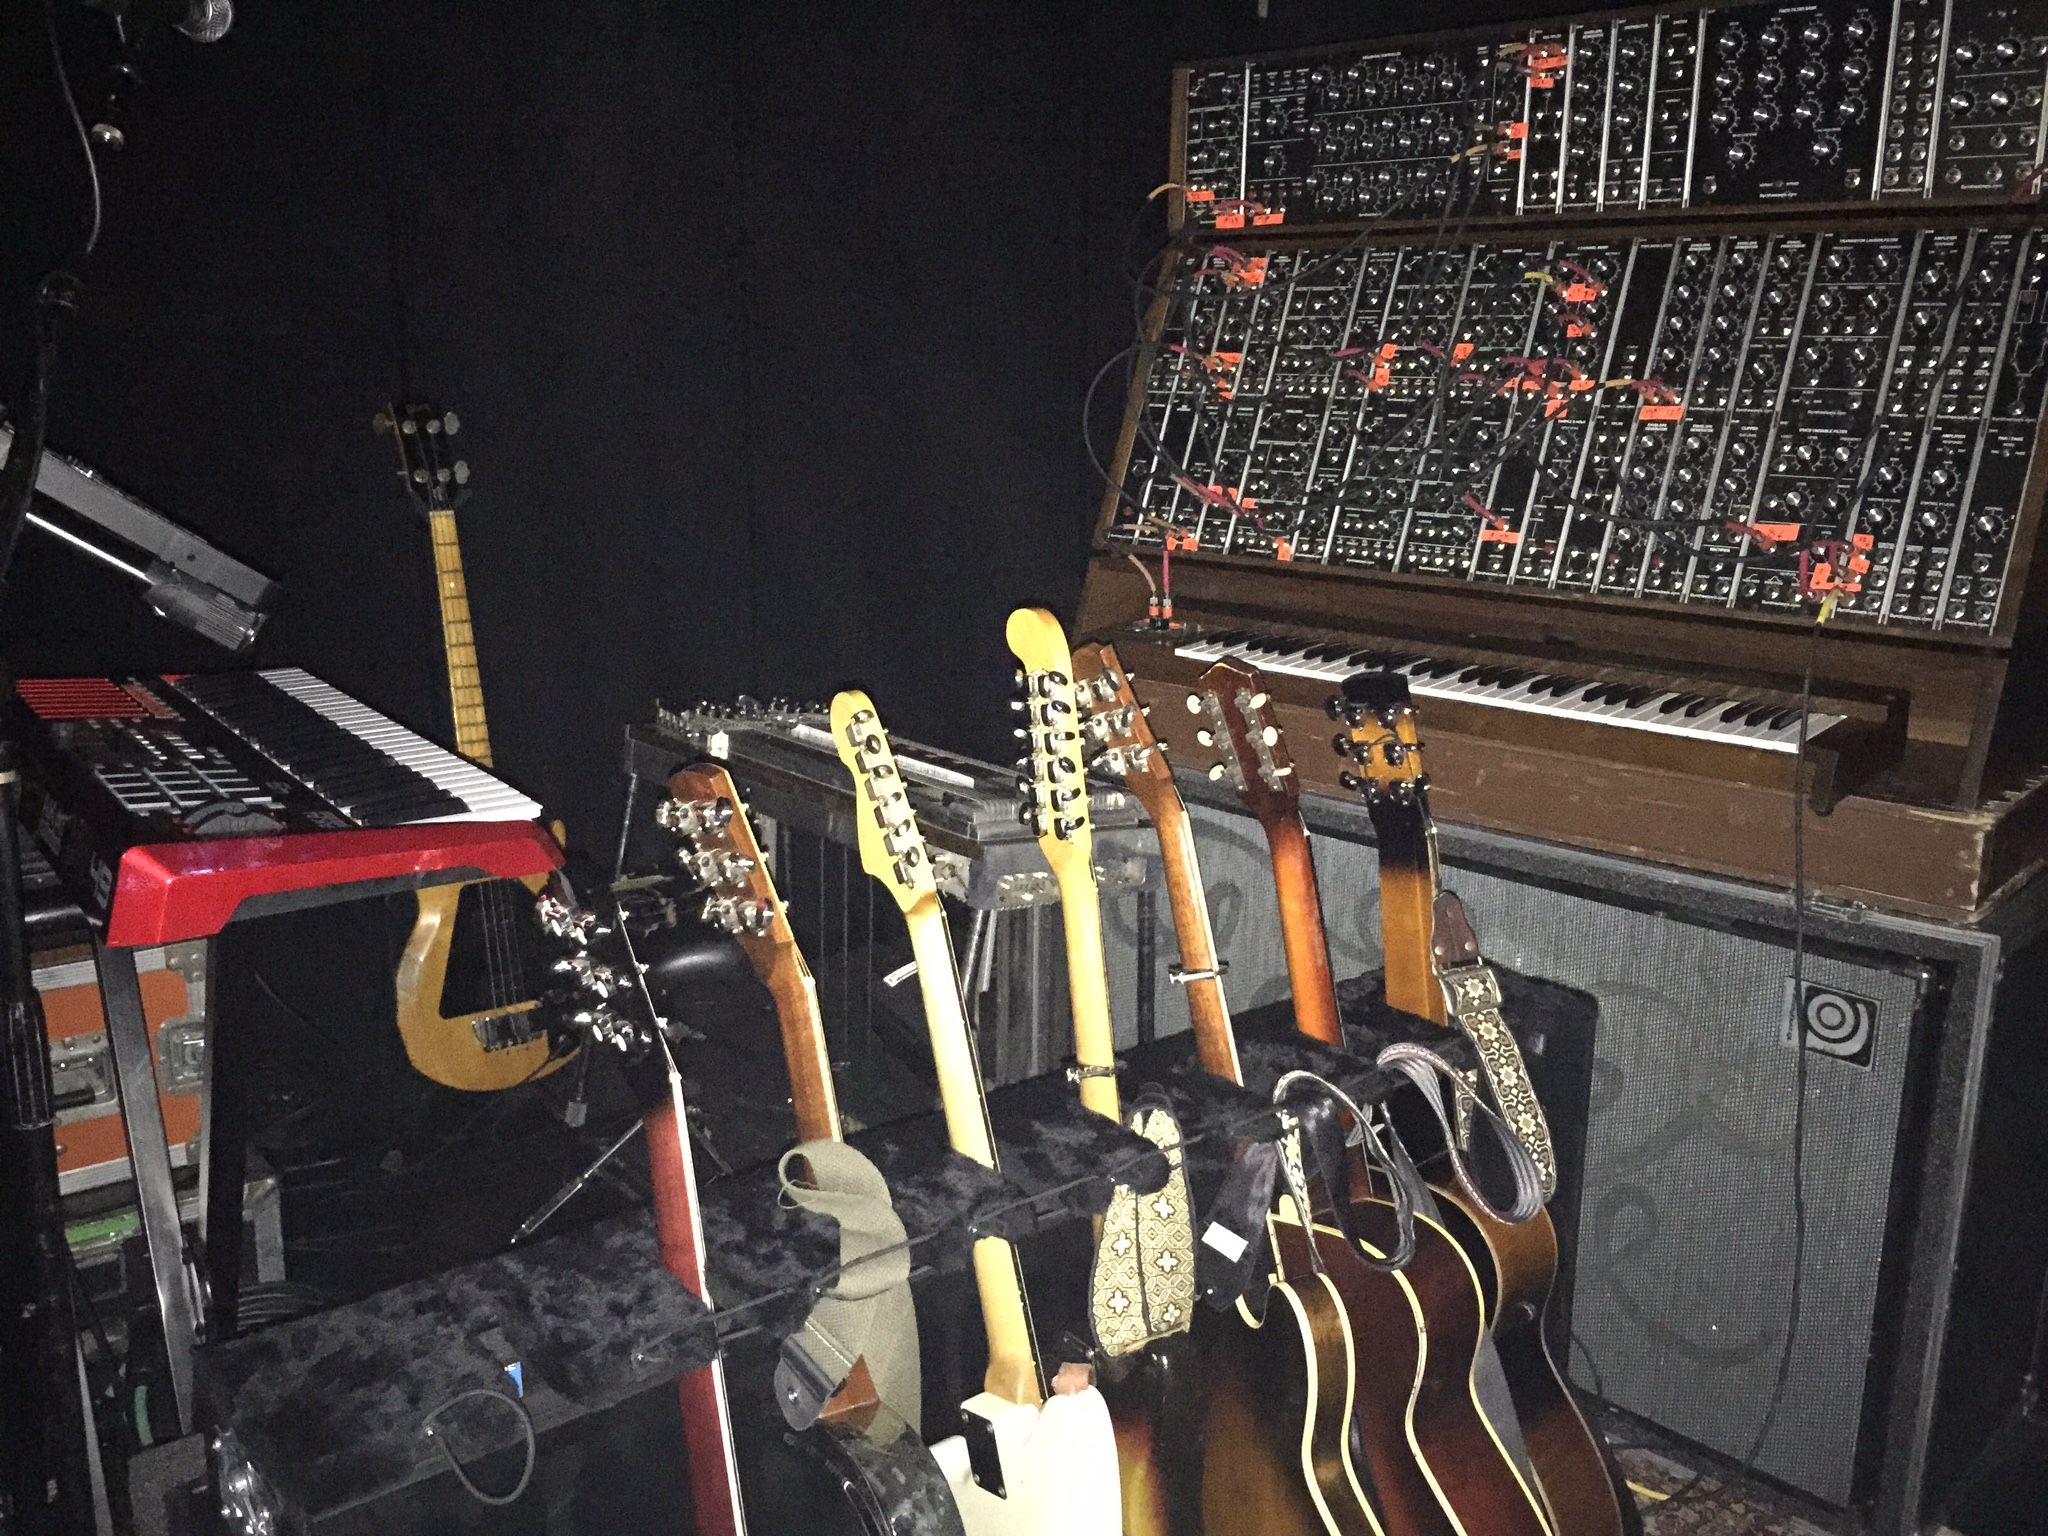 Geeking out over Crowder's rigs.